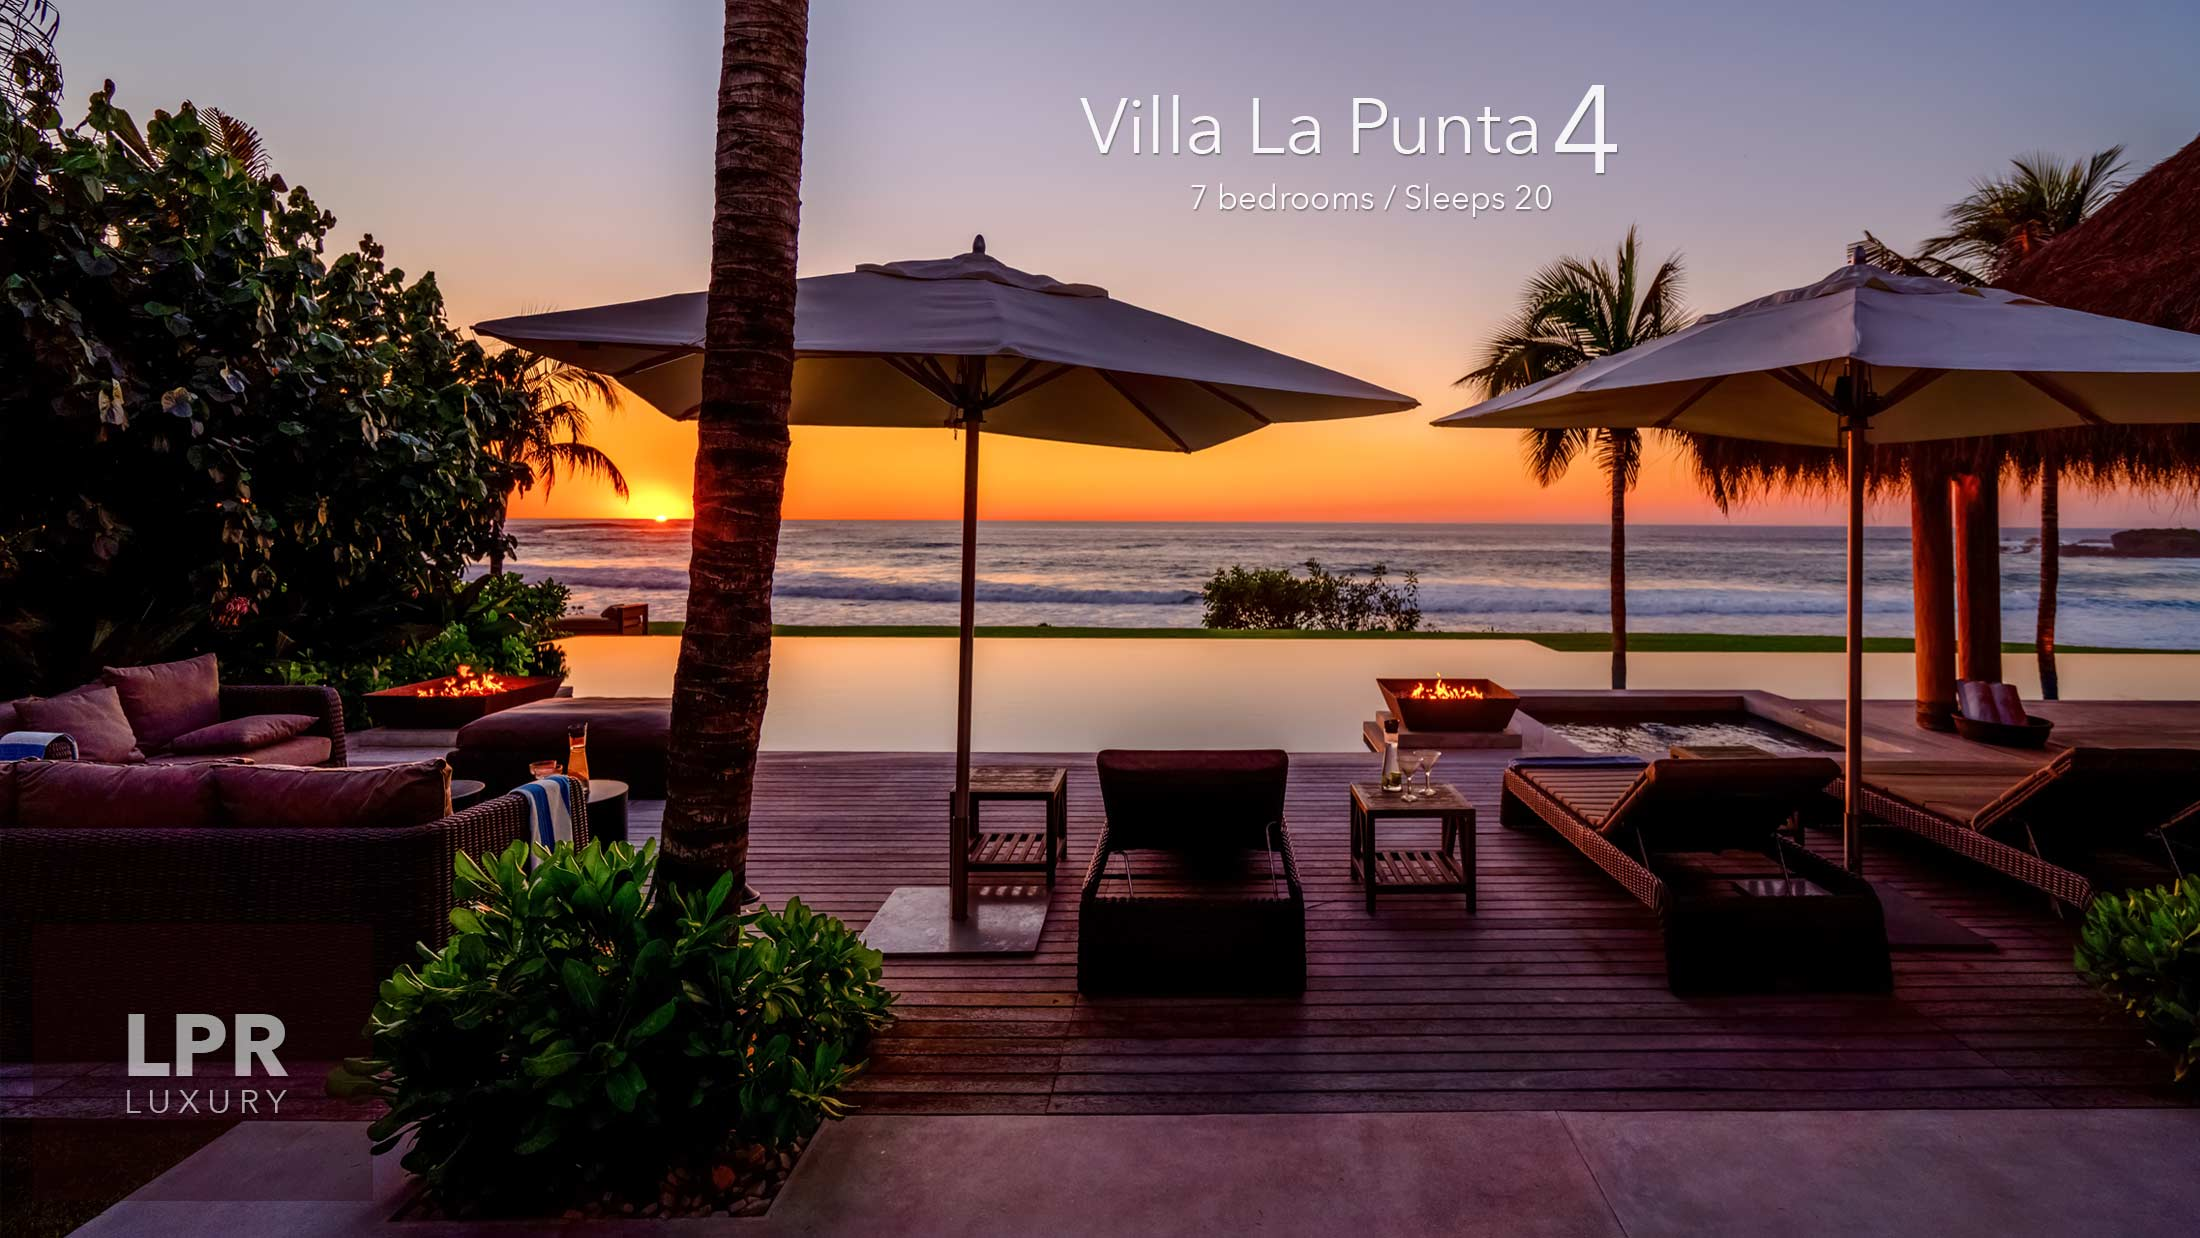 Explore Lpr Luxury The Agency In Luxury Punta Mita Real Estate And